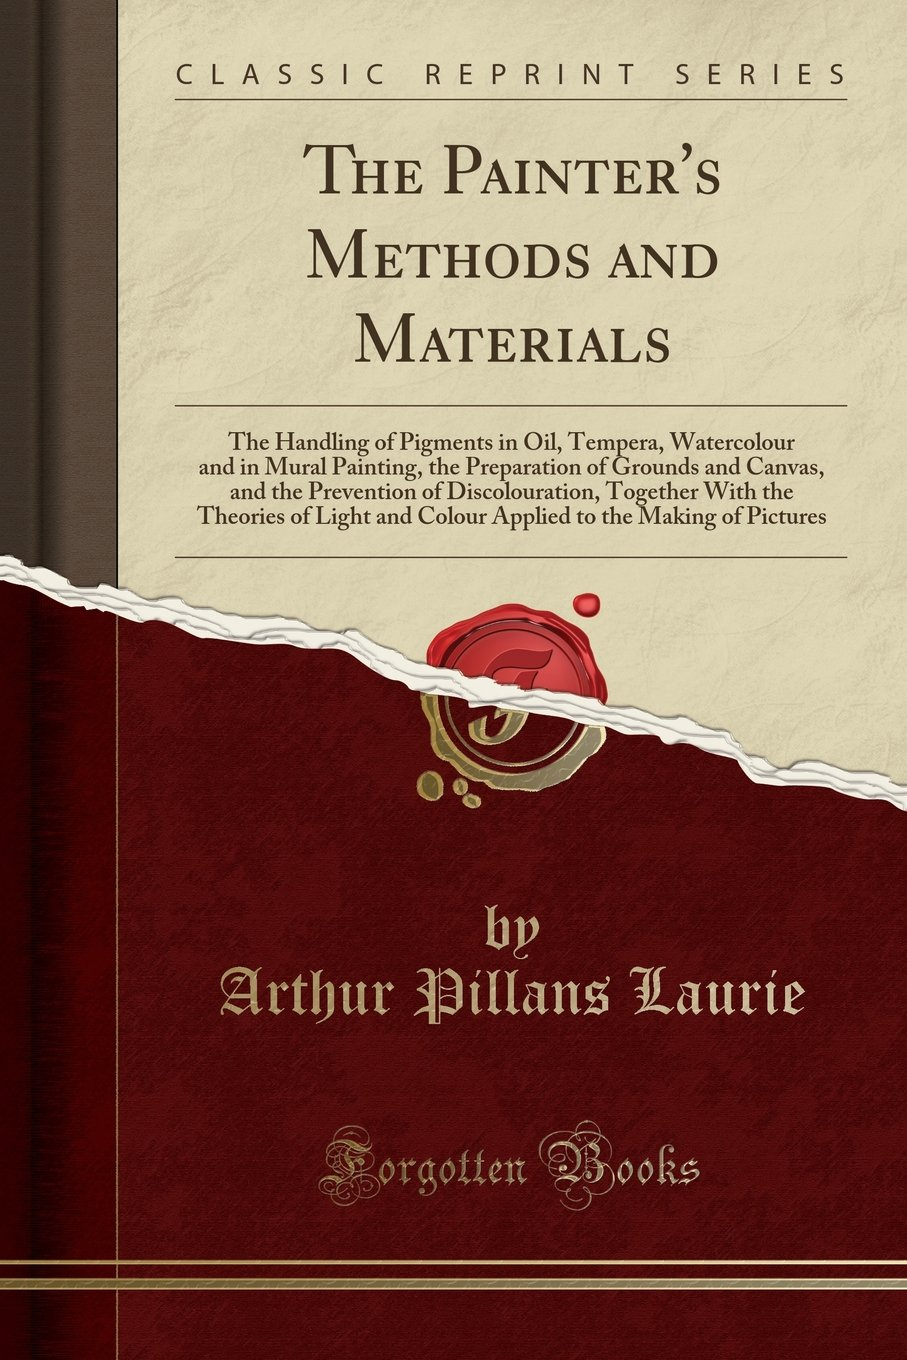 Download The Painter's Methods and Materials: The Handling of Pigments in Oil, Tempera, Watercolour and in Mural Painting, the Preparation of Grounds and ... of Light and Colour Applied to the Ma pdf